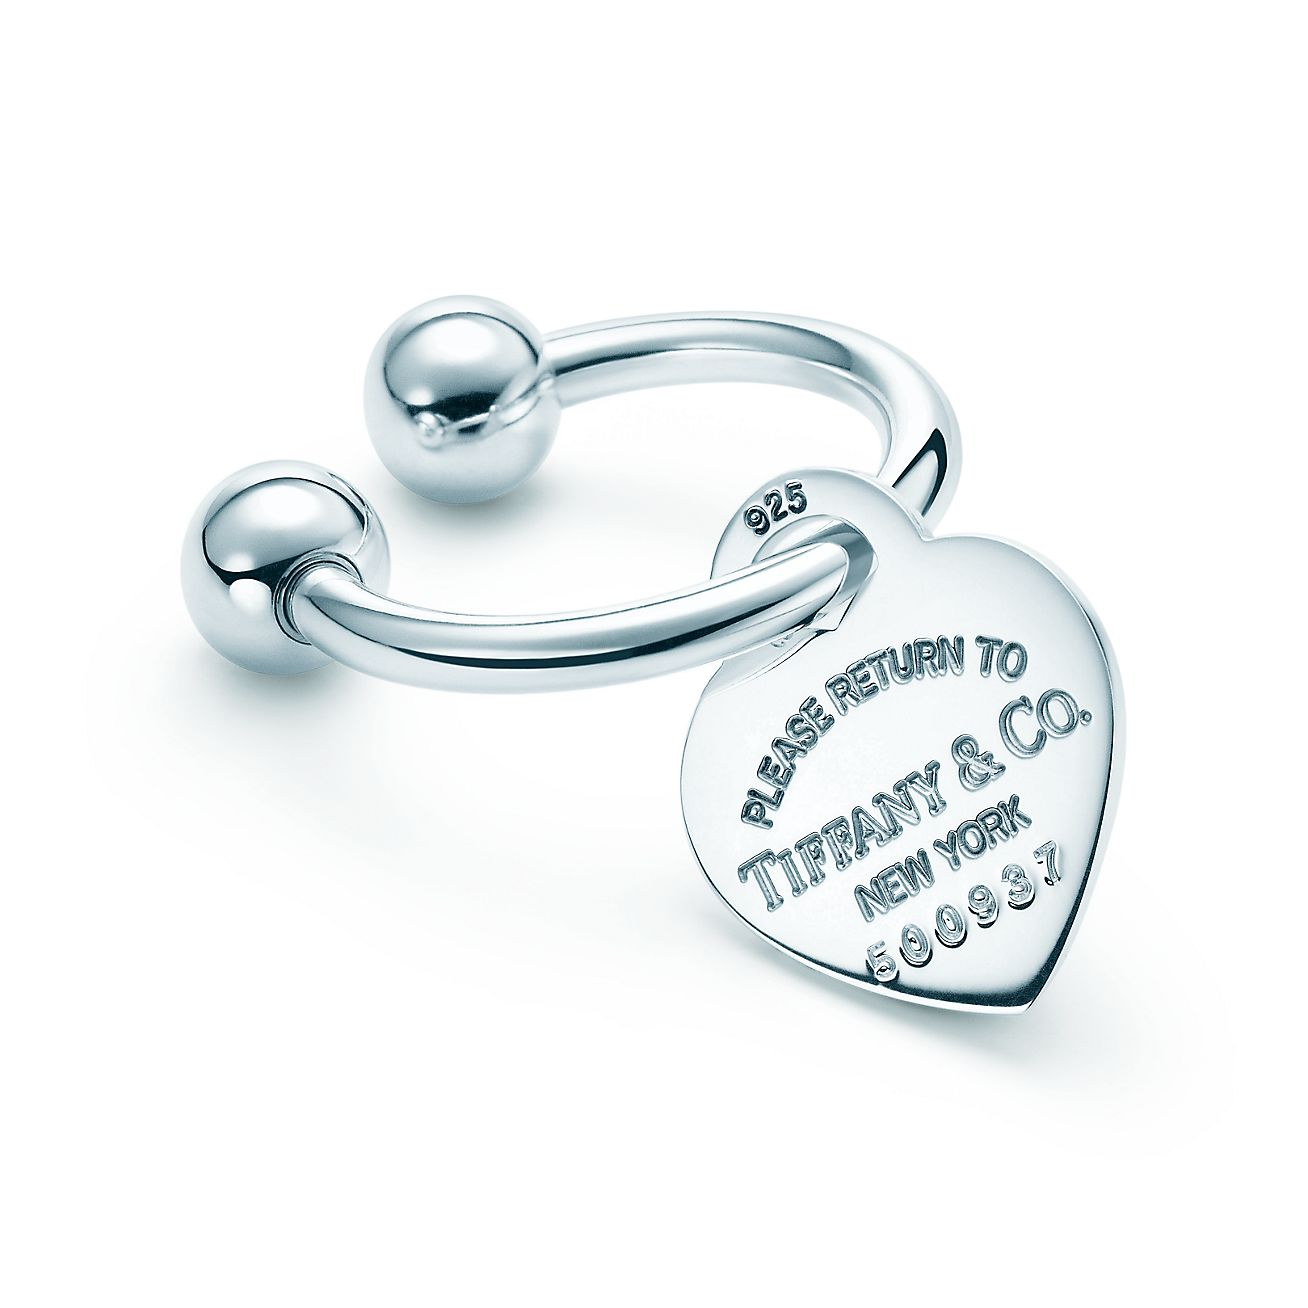 Return To Tiffany® Heart Tag Key Ring In Sterling Silver. Blue Nile Studio Petite French Pavé Crown Diamond Engagement Rings. Purseforum Rings. Multiple Stone Engagement Rings. Synthetic Diamond Wedding Rings. Bicolor Engagement Rings. Casual Engagement Rings. Kismet Engagement Rings. Statement Rings